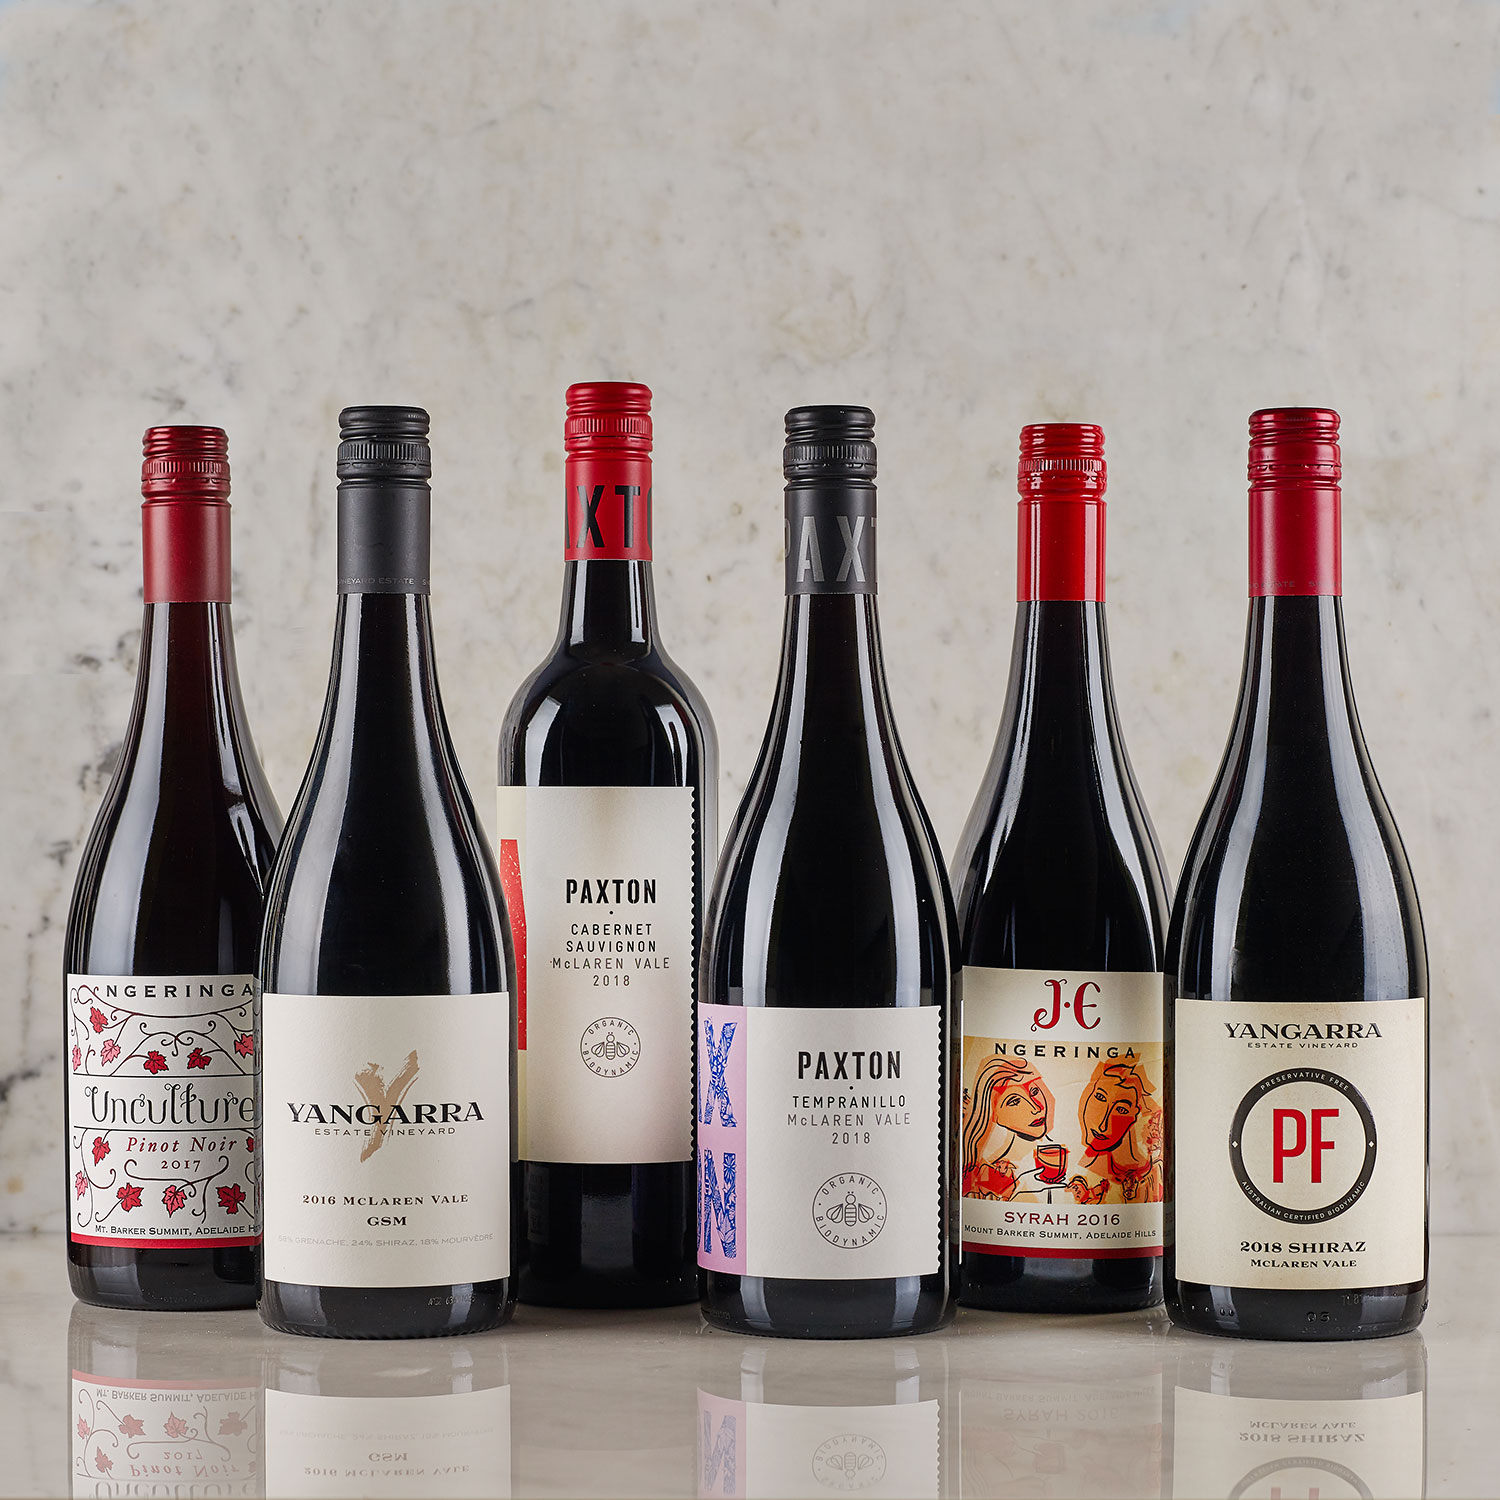 Epic Wines Online's Ultimate Reds pack, featuring certified organic and biodynamic wines